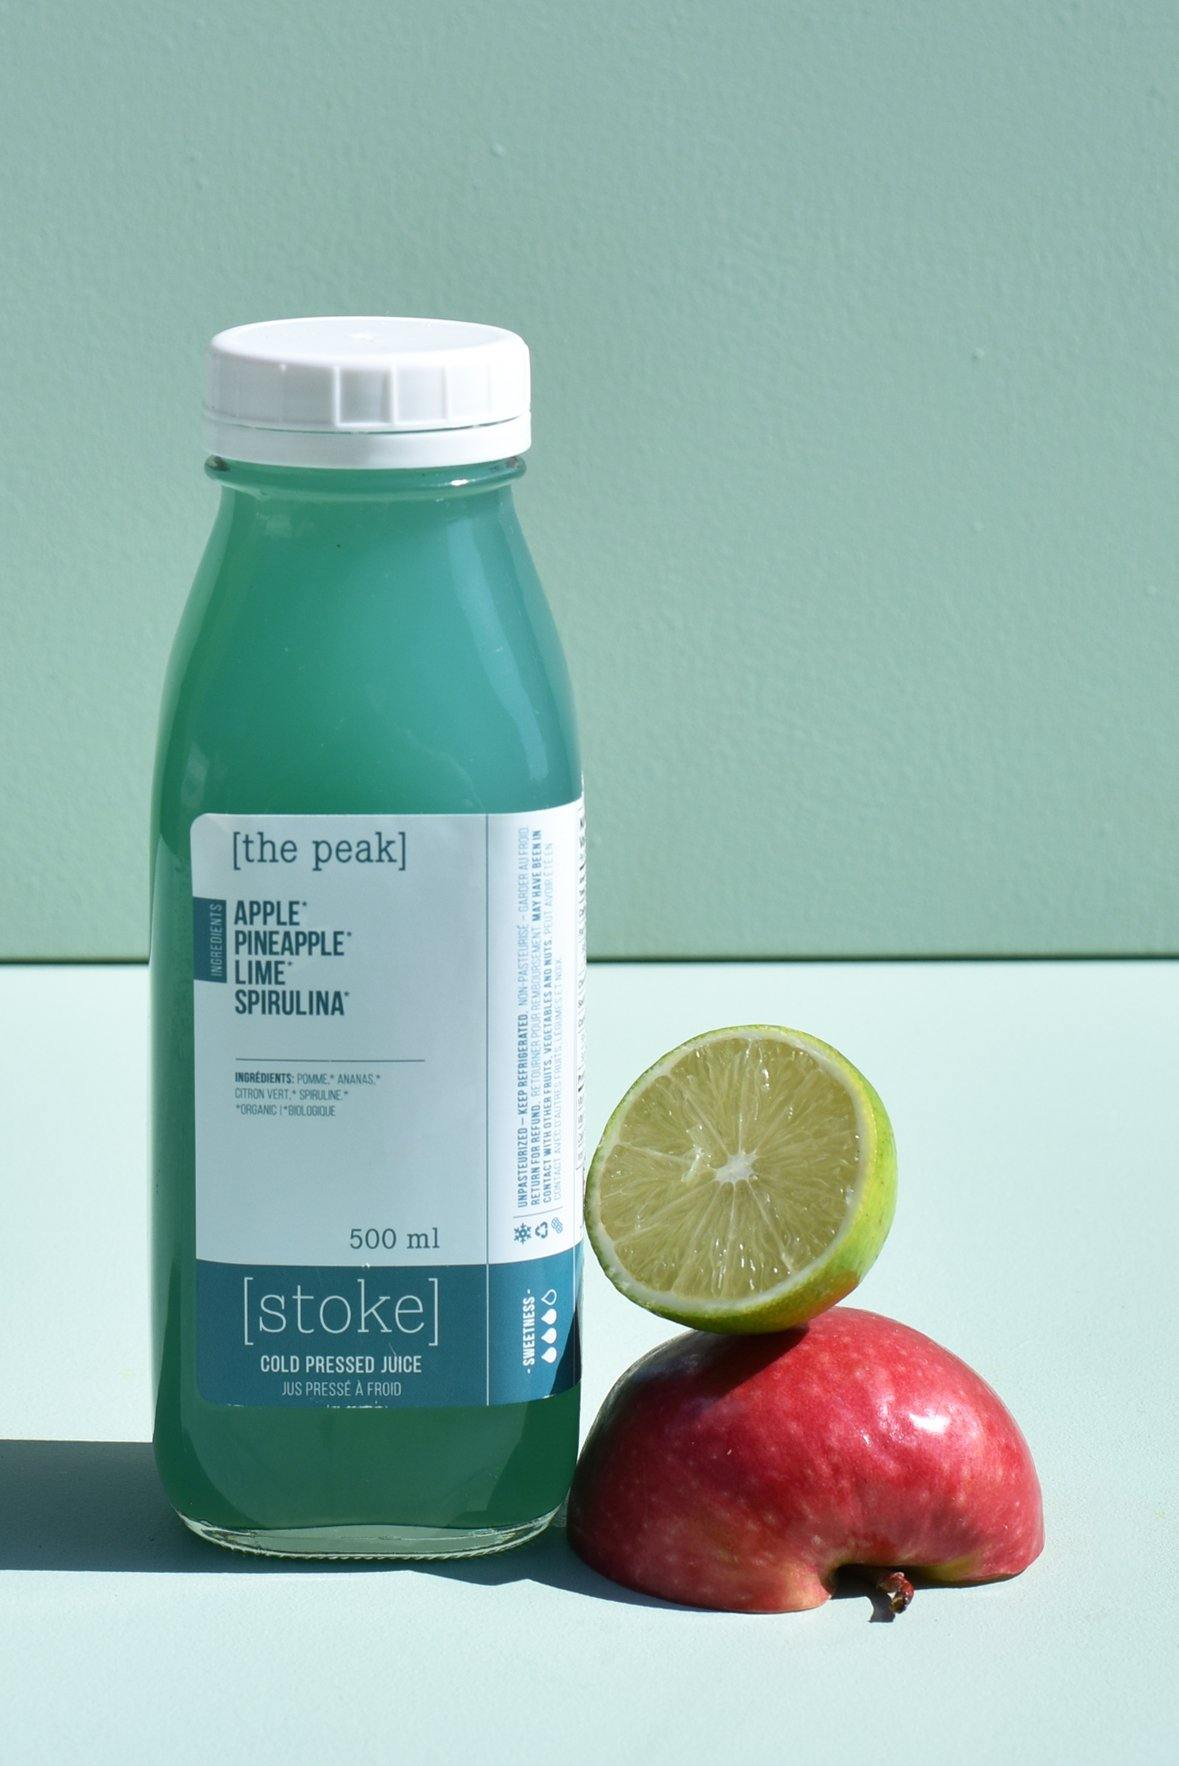 [ the peak ] cold pressed juice with pineapple and spirulina